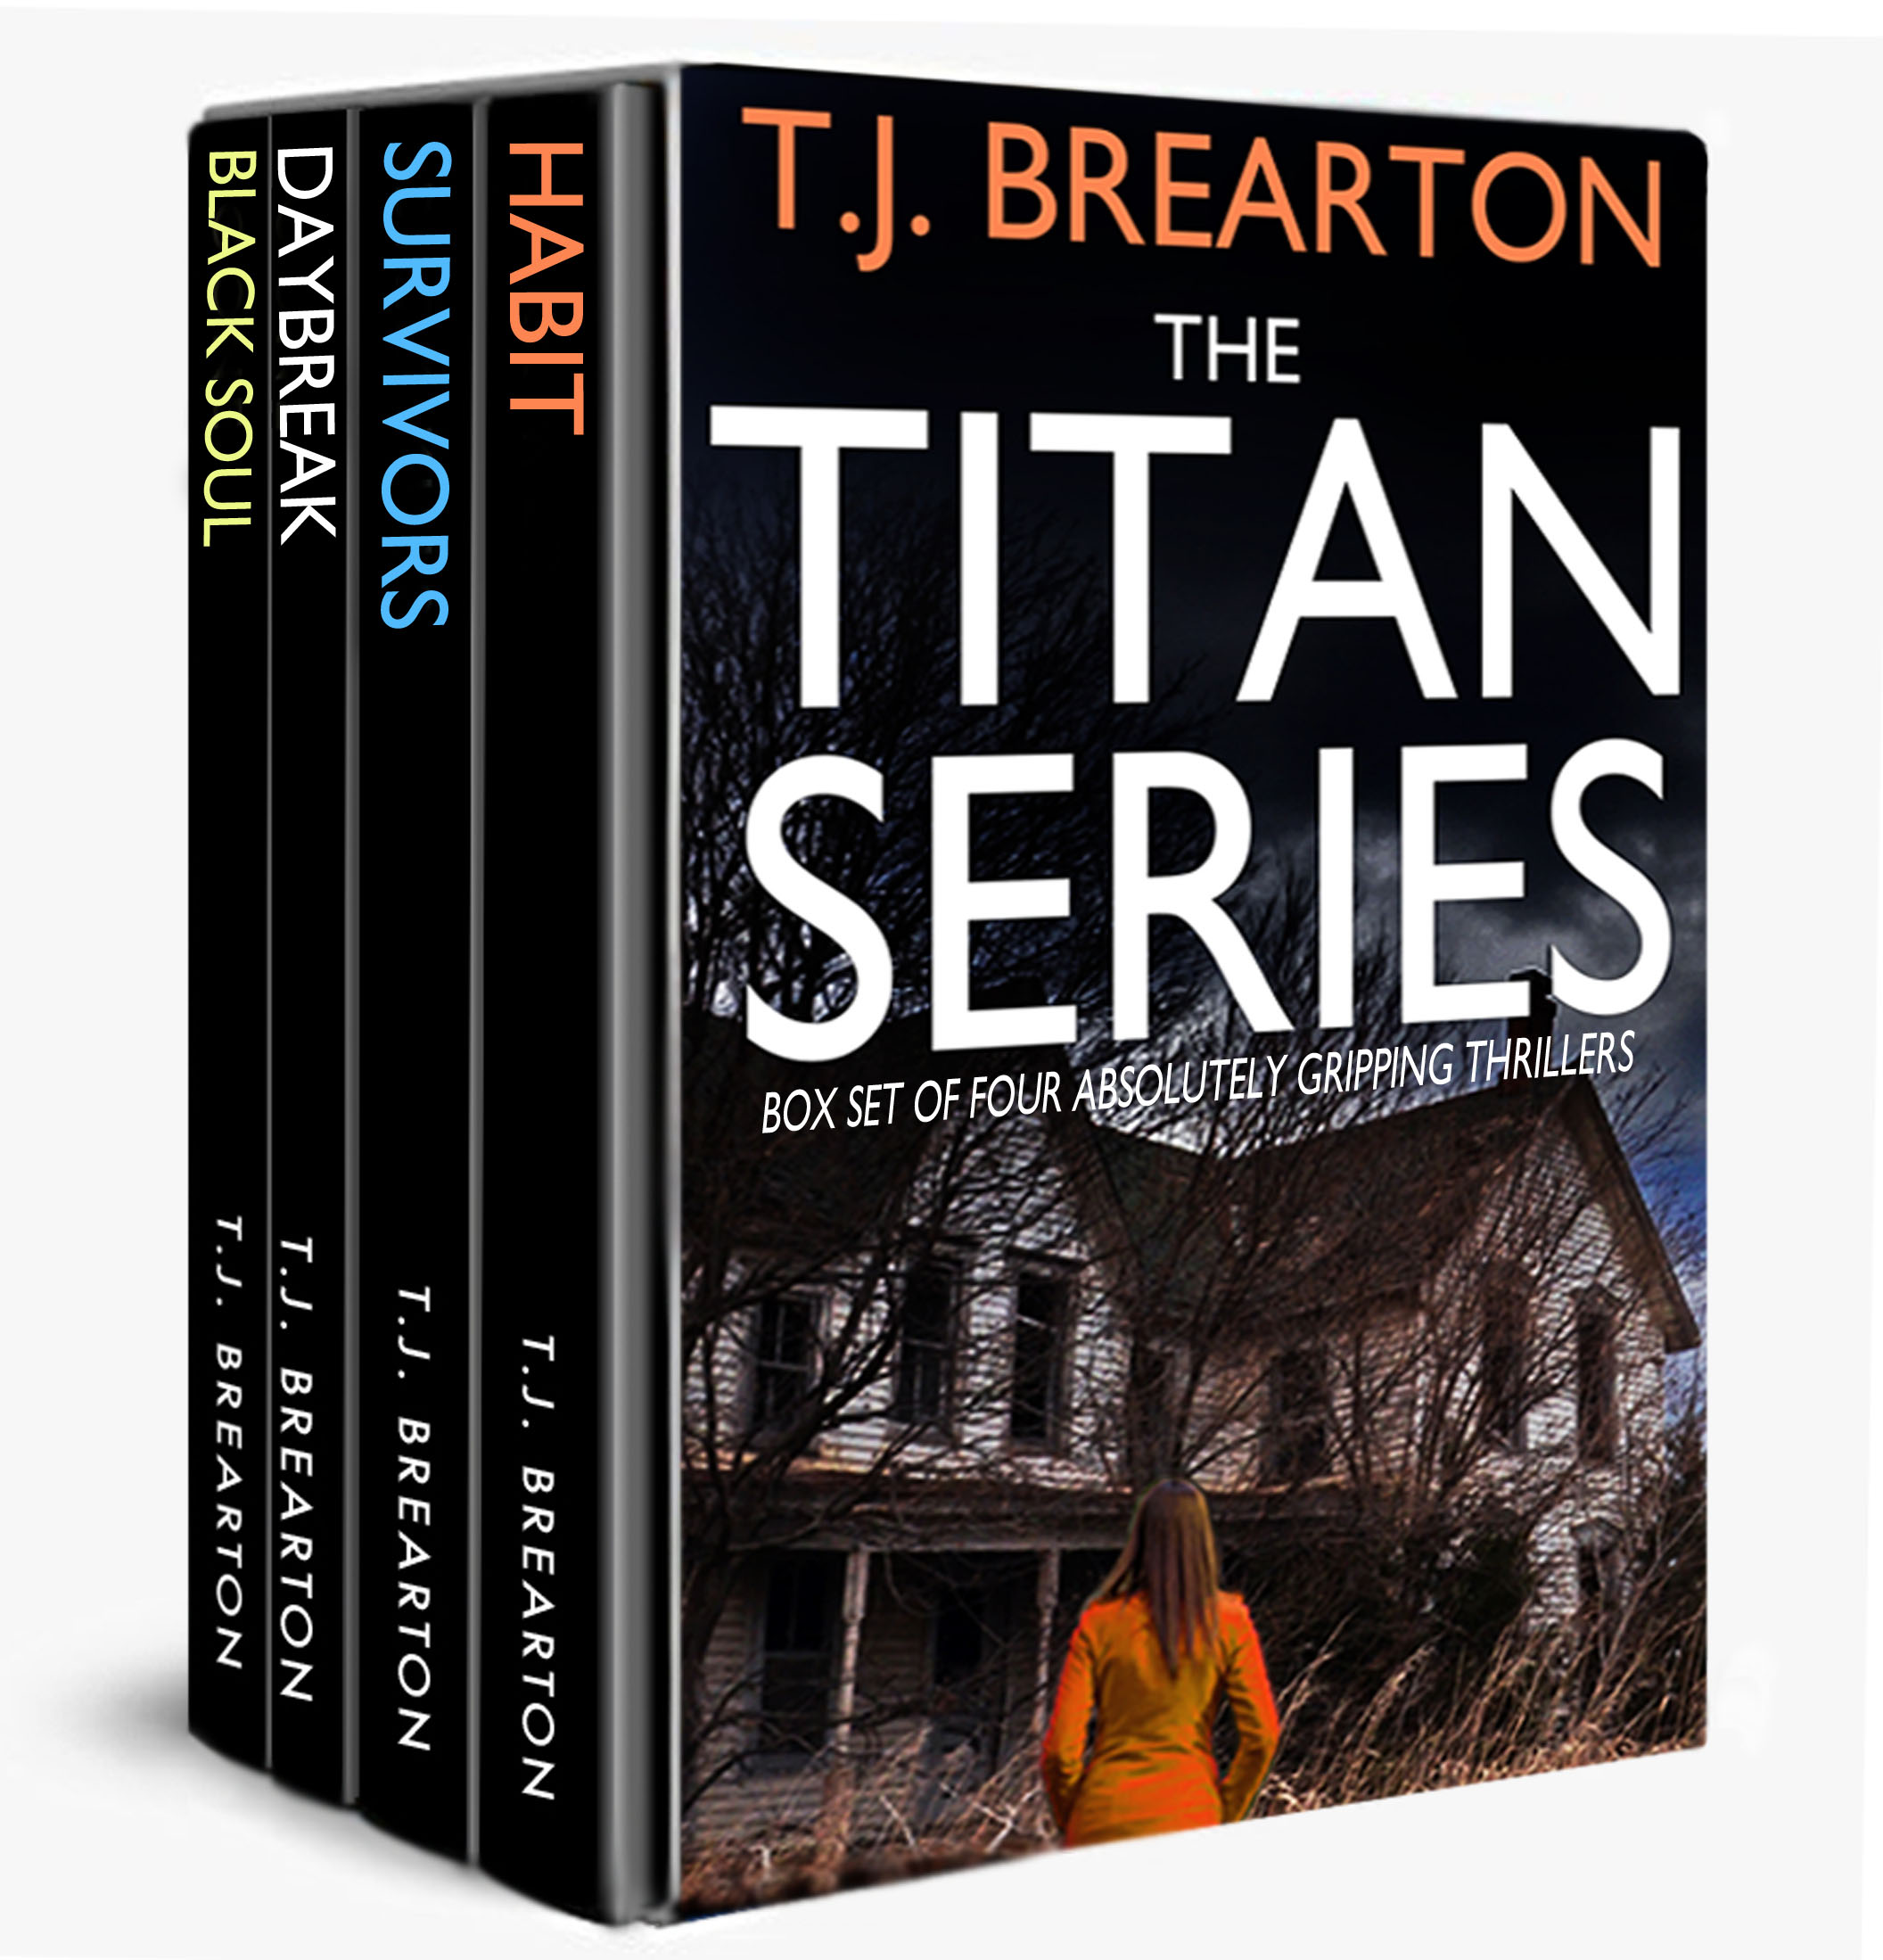 titan series box.jpg